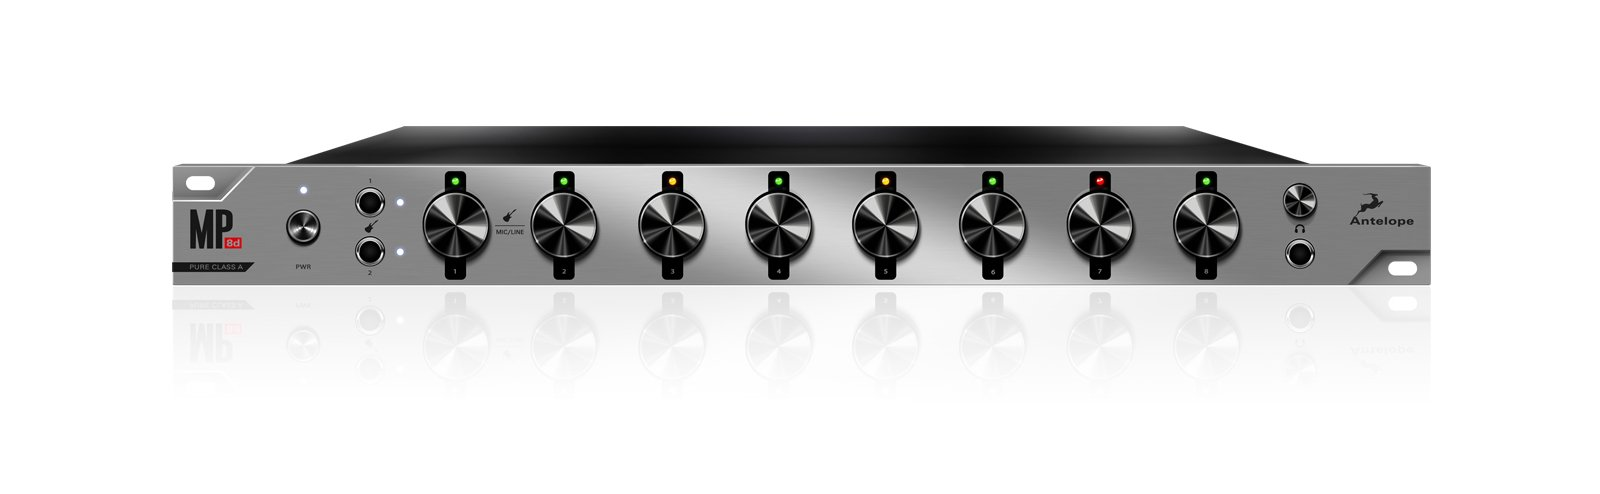 8-channel Mic Preamp and A/D